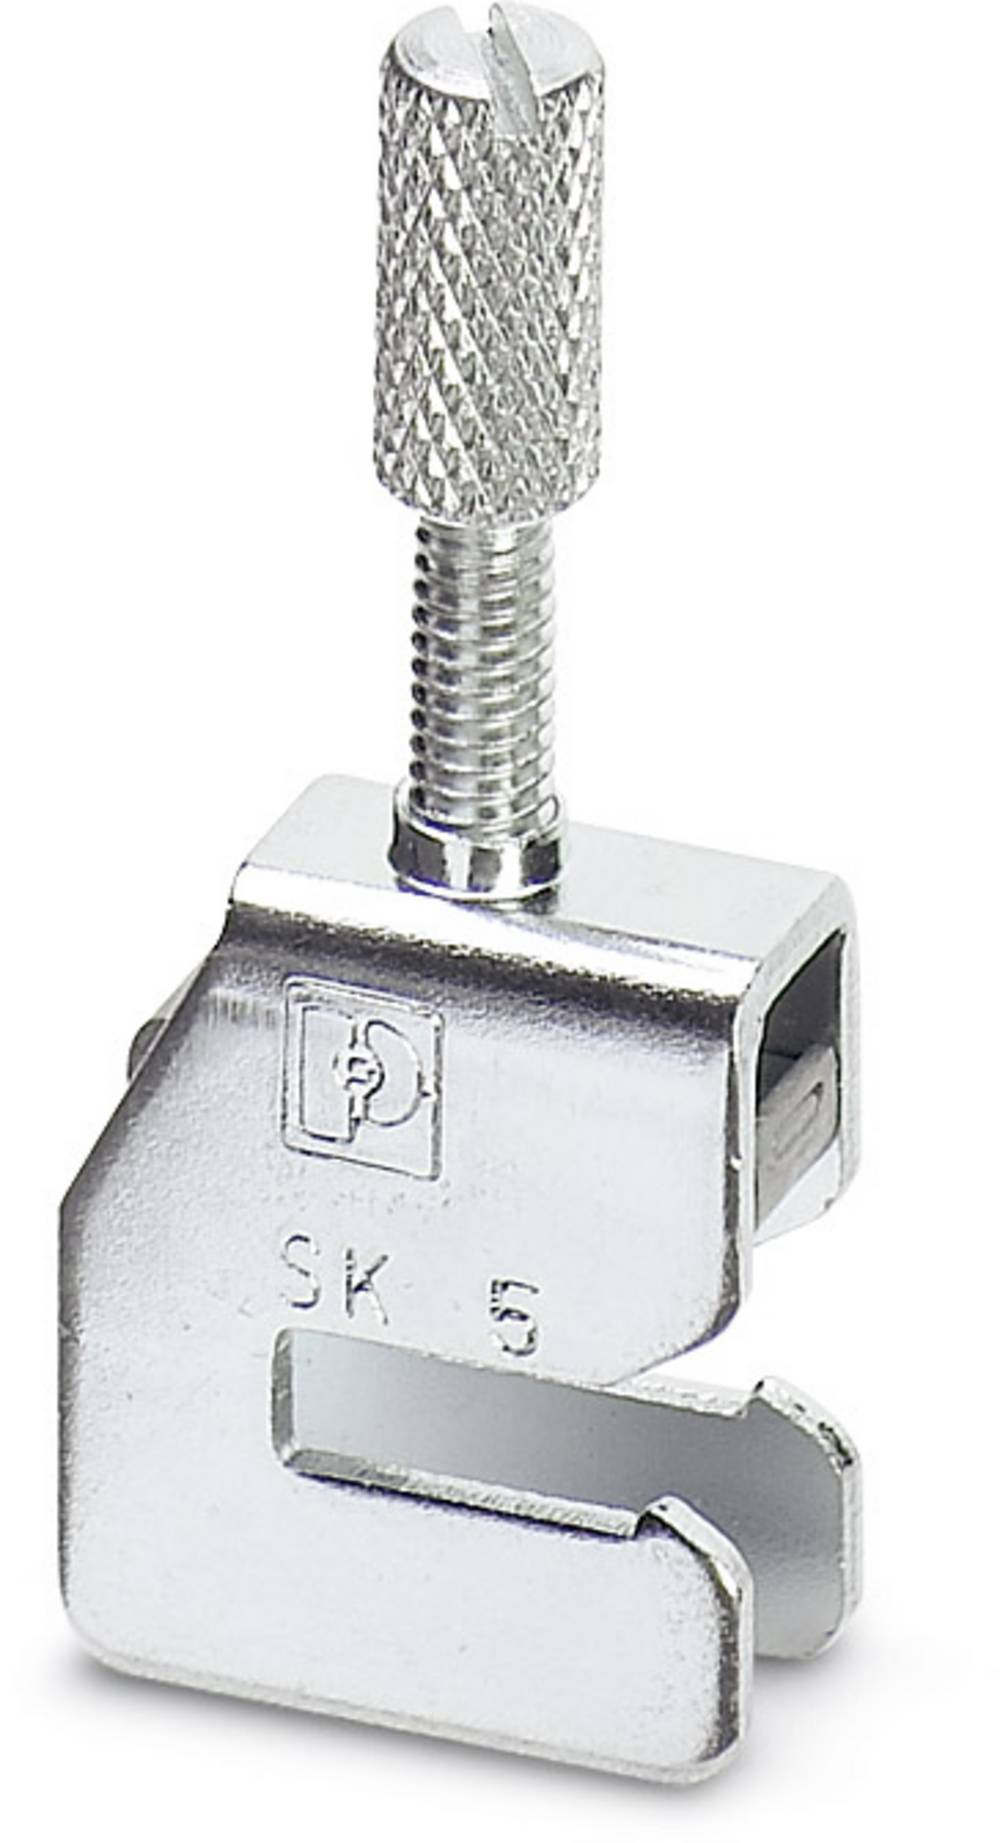 Shield connection terminal block SK 5 SK 5 Phoenix Contact Indhold: 10 stk